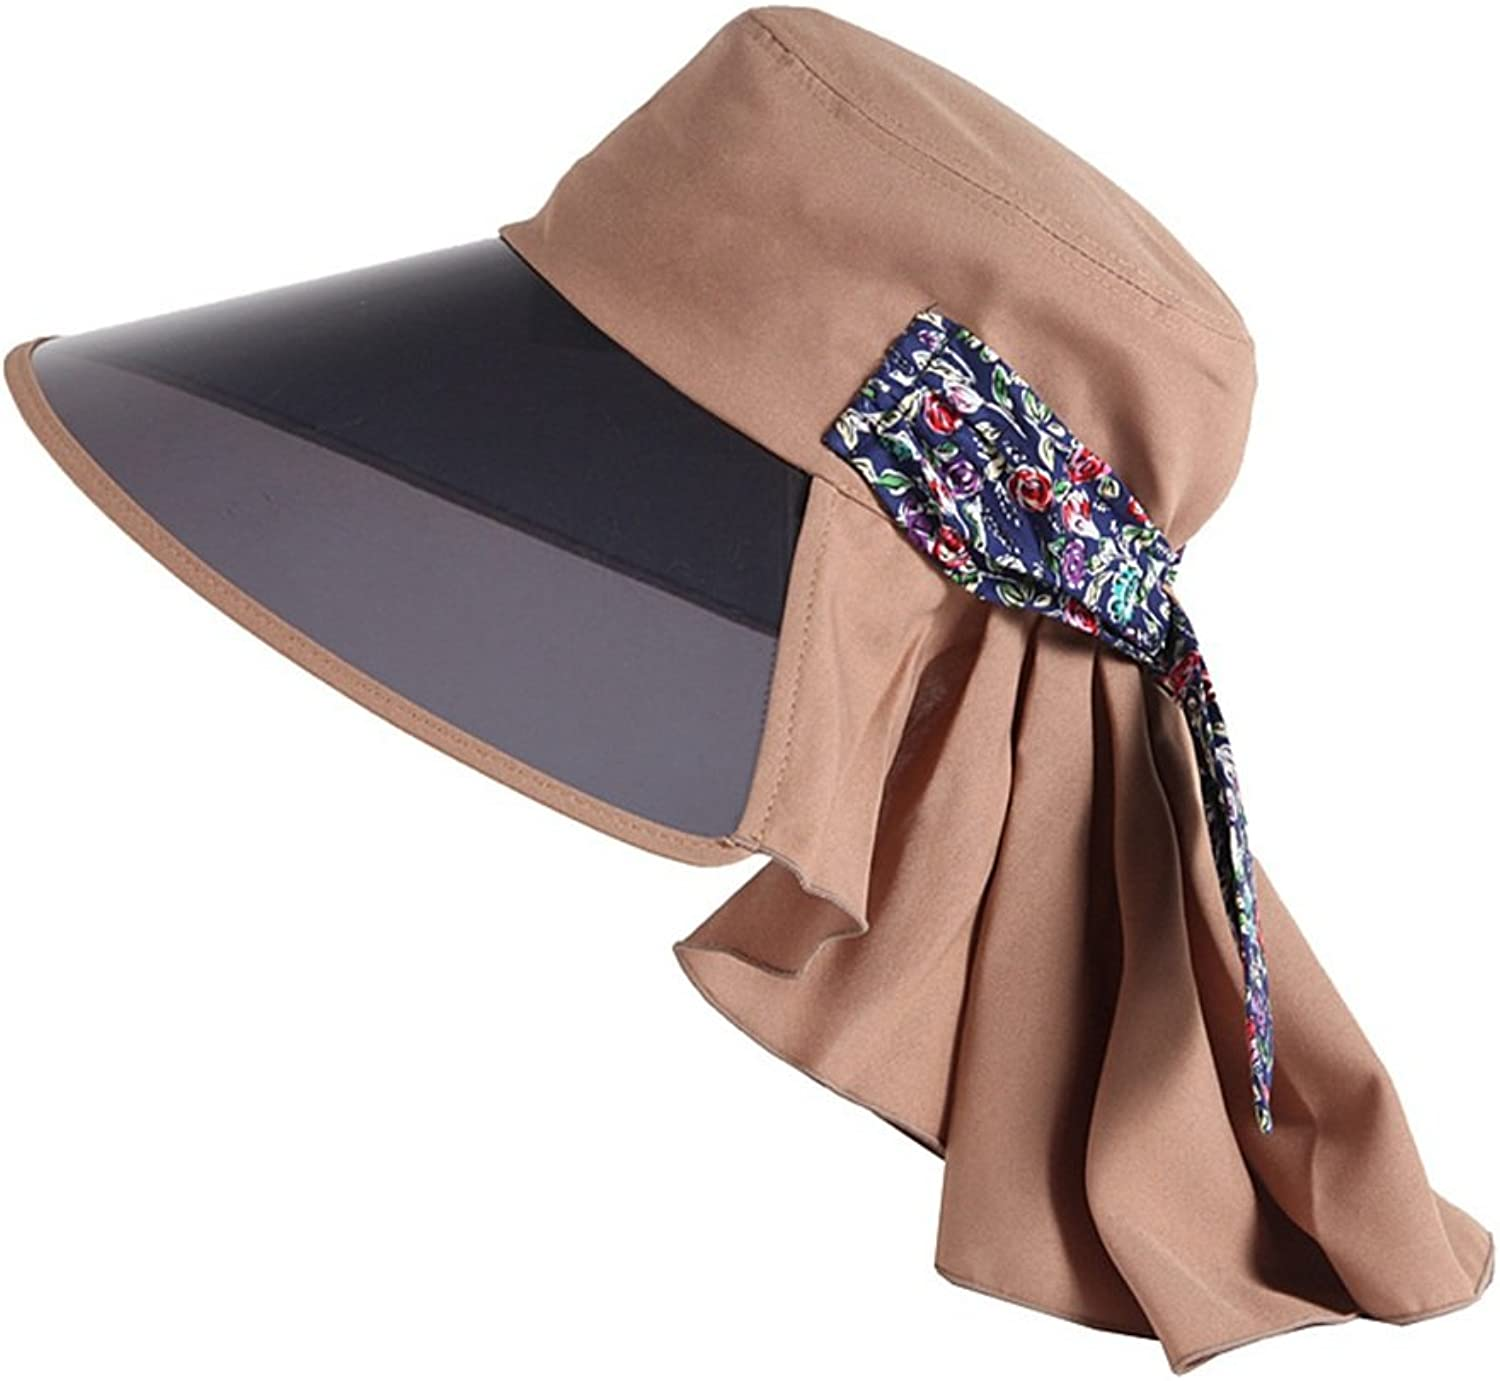 Hat Lady's Sunshade Summer Outdoor Sun Hat Uv Sun Hat Beach Hat with Large Eaves (color   Brown)